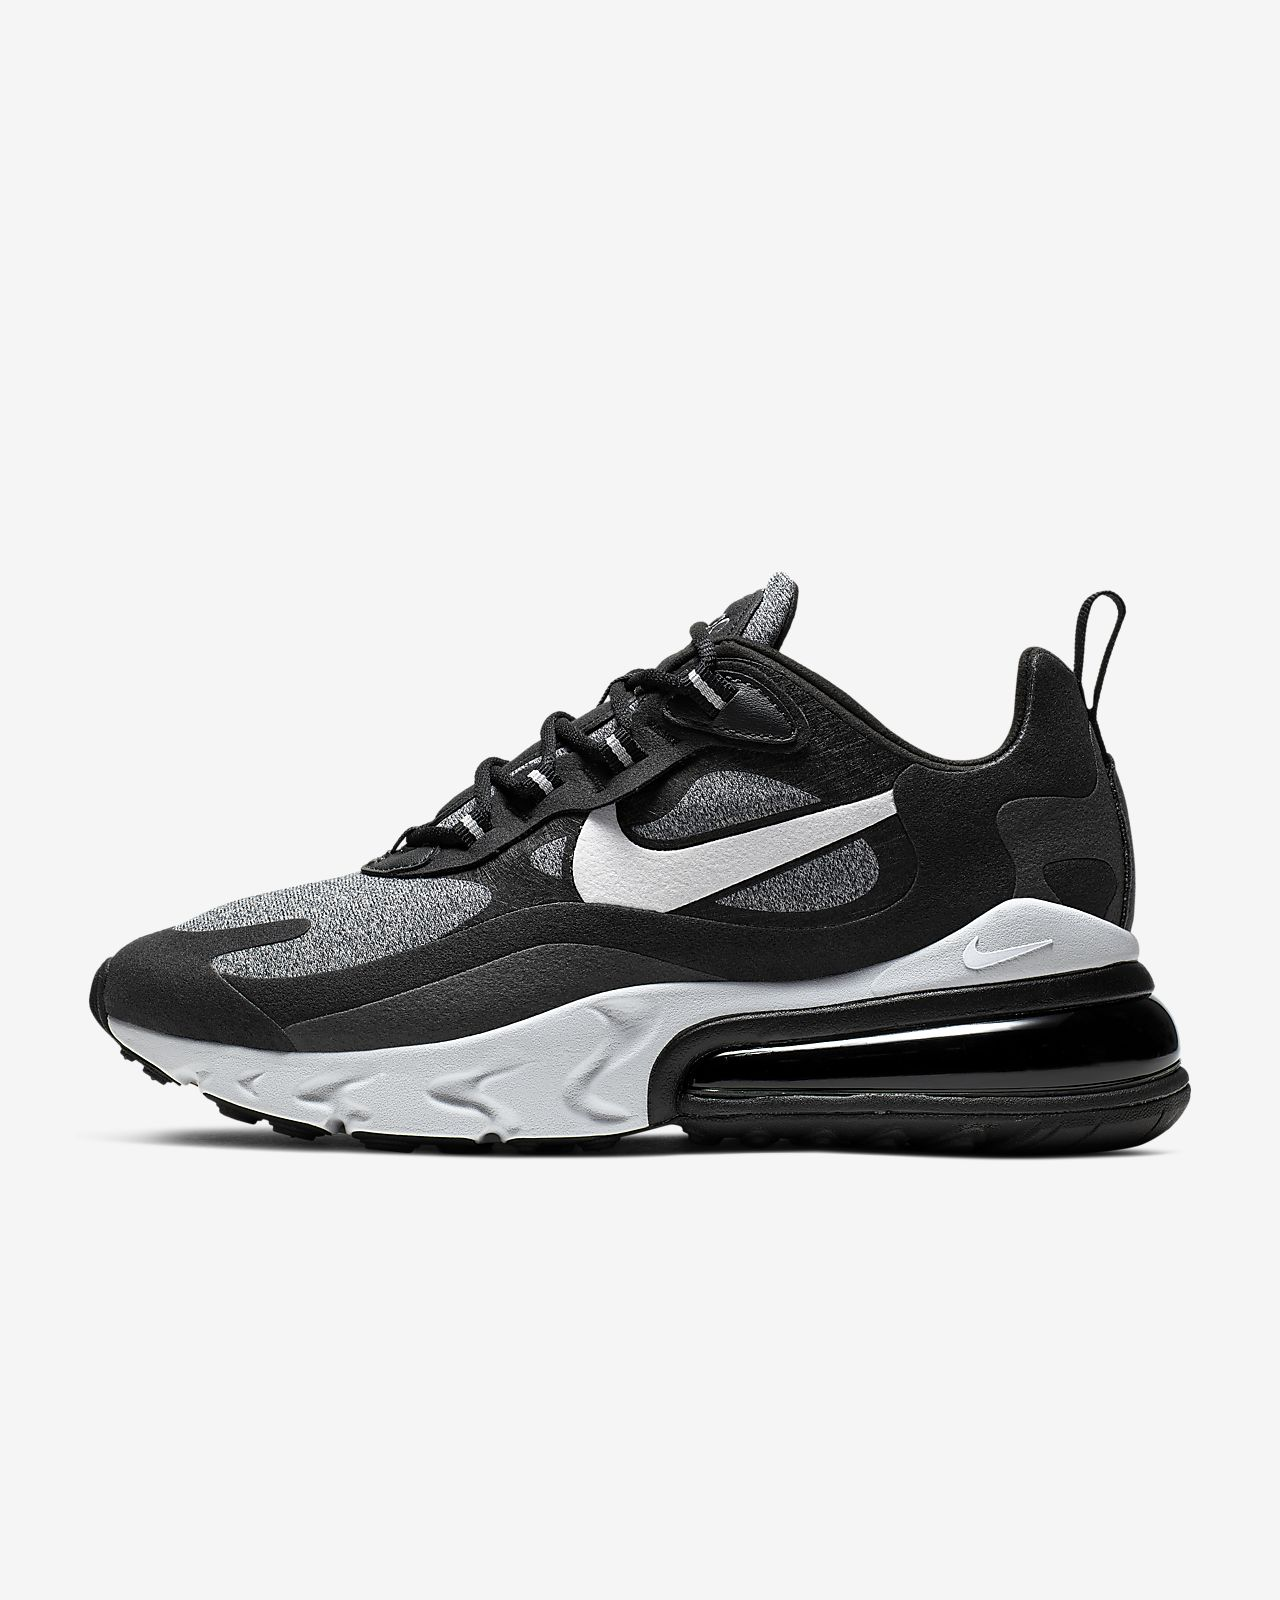 Women Shoes | Nike air max, Nike shoes for sale, Nike boots